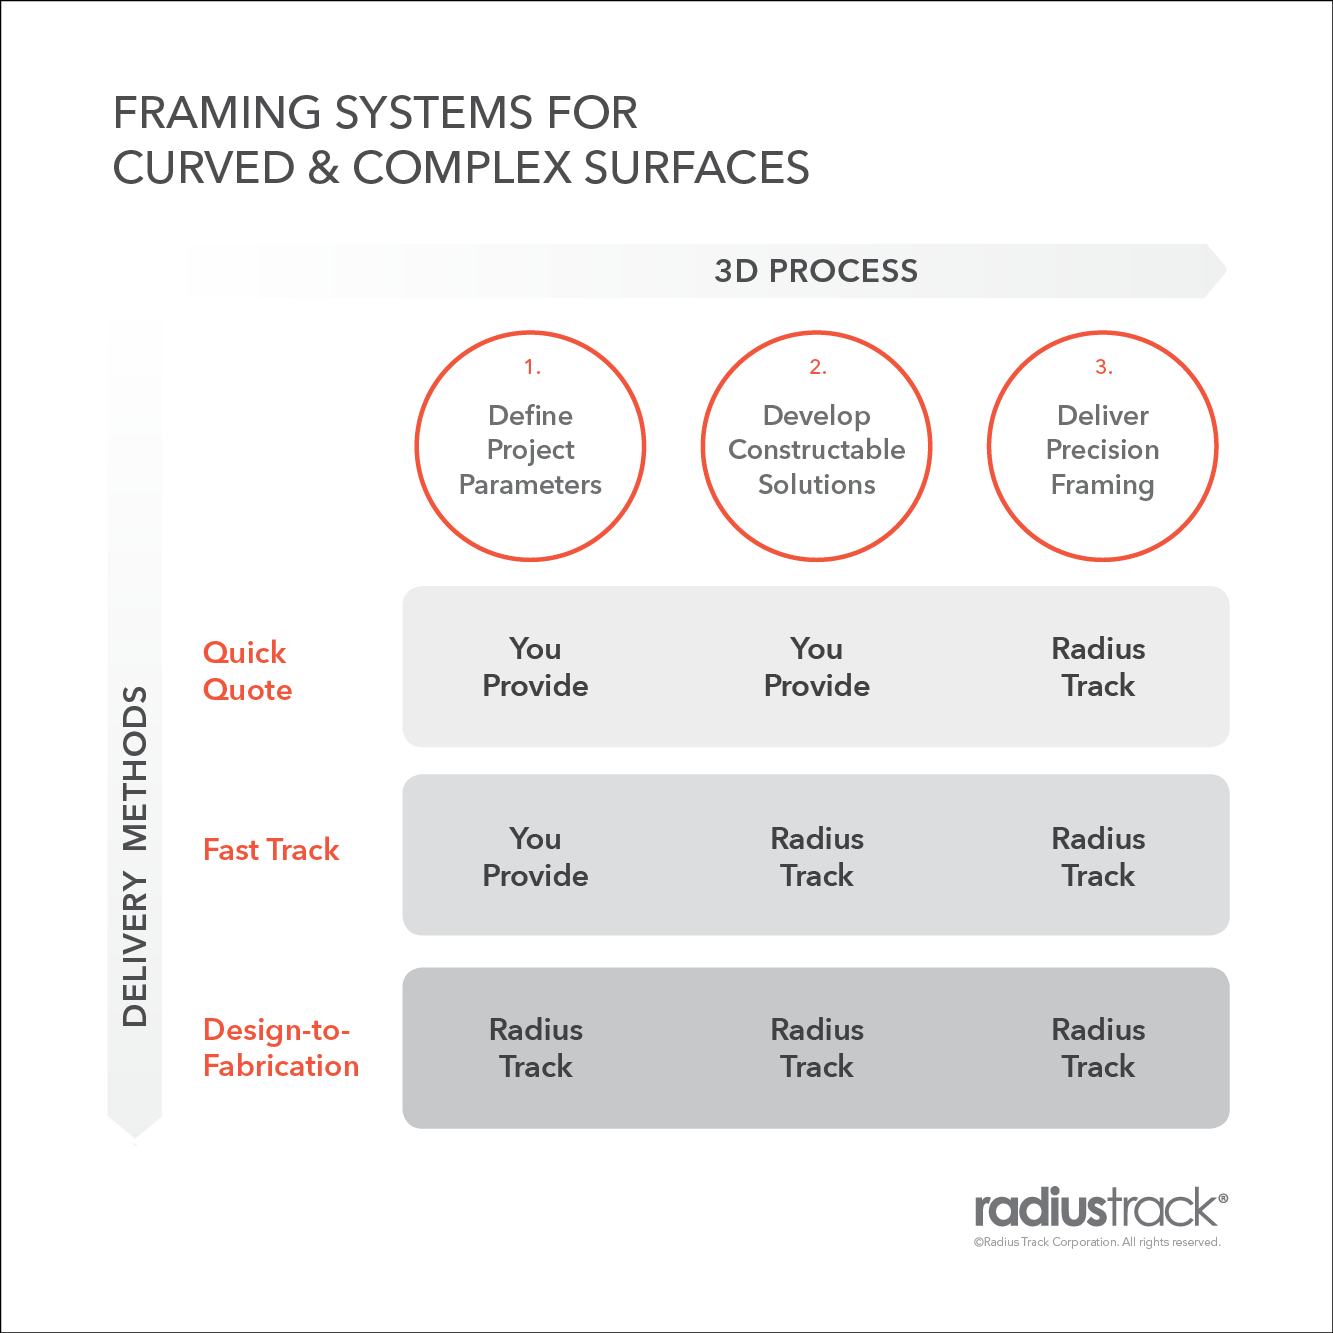 Radius-Track-Process-and-Delivery-Methods-Matrix.png